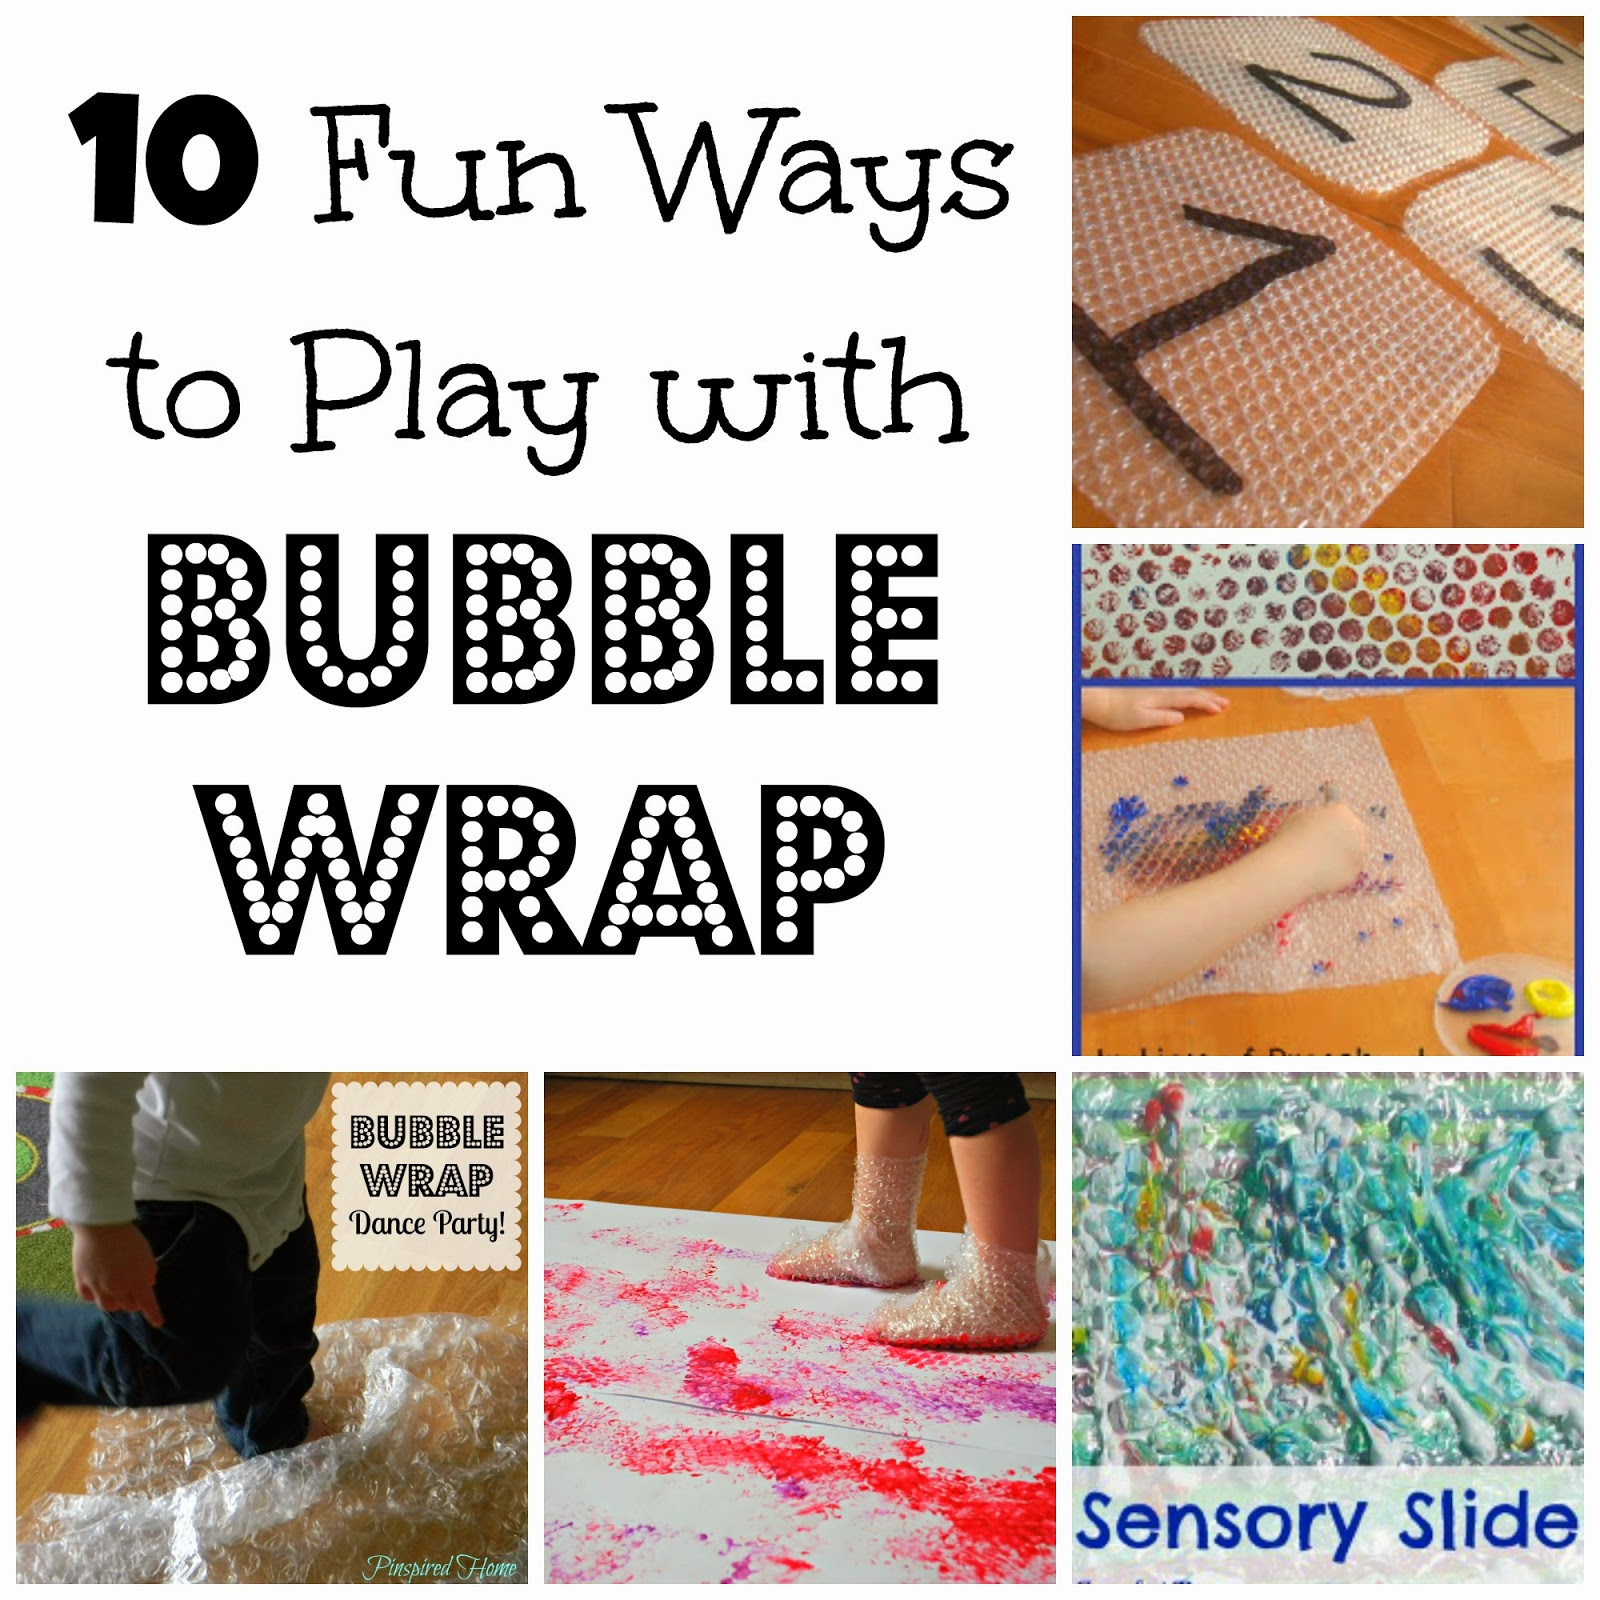 http://pinspiredhome.blogspot.com/2014/05/tips-tricks-thursday-bubble-wrap.html